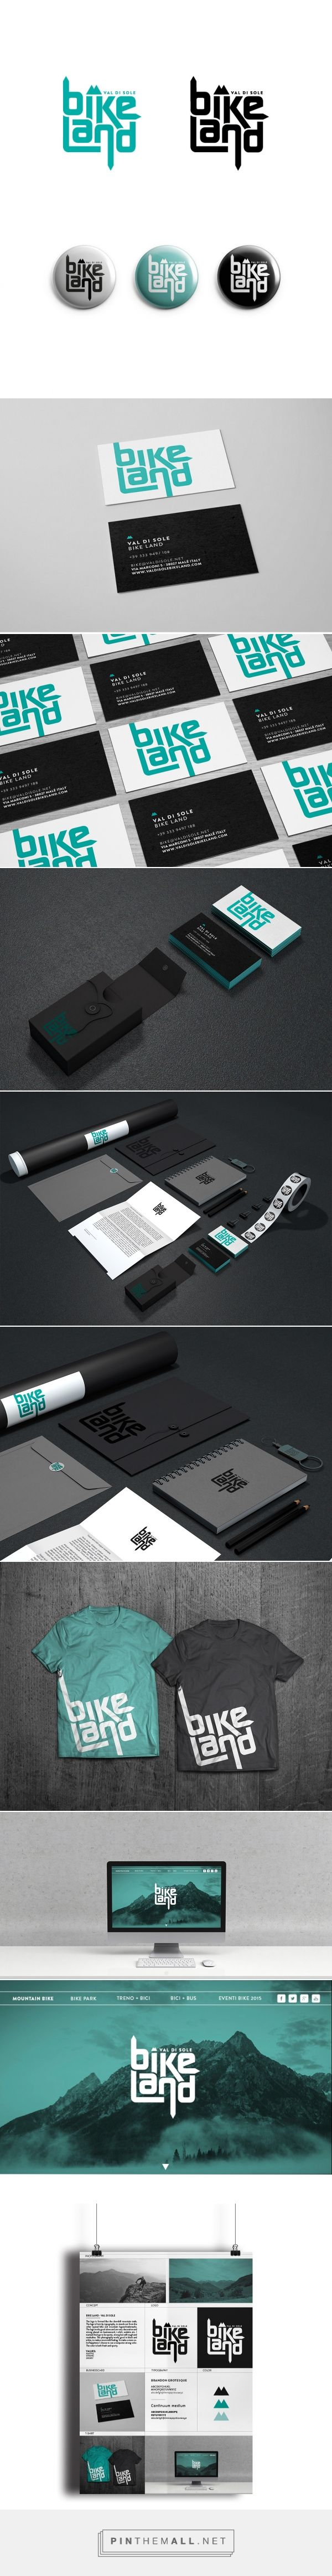 Val di Sole Bike Land Branding on Behance